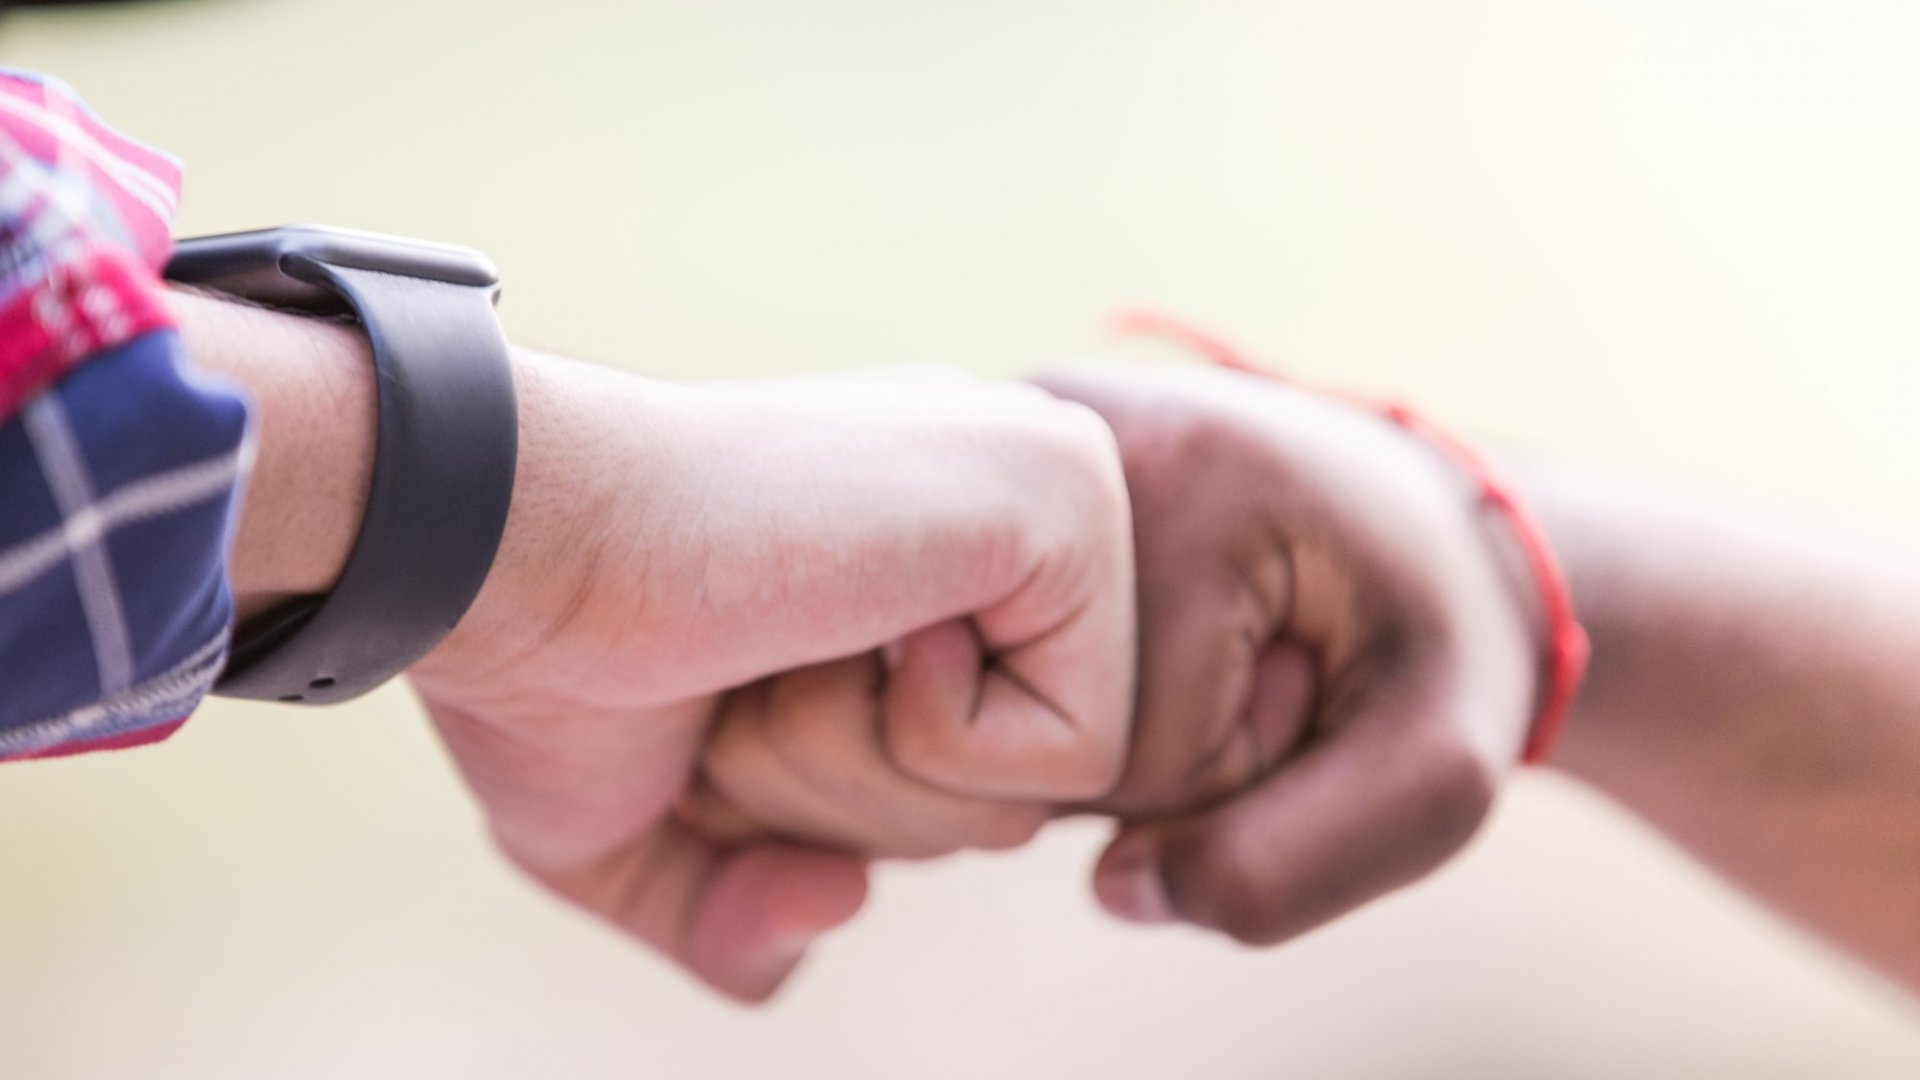 How to Get Your Sales Teams Pumped Up, According to Science